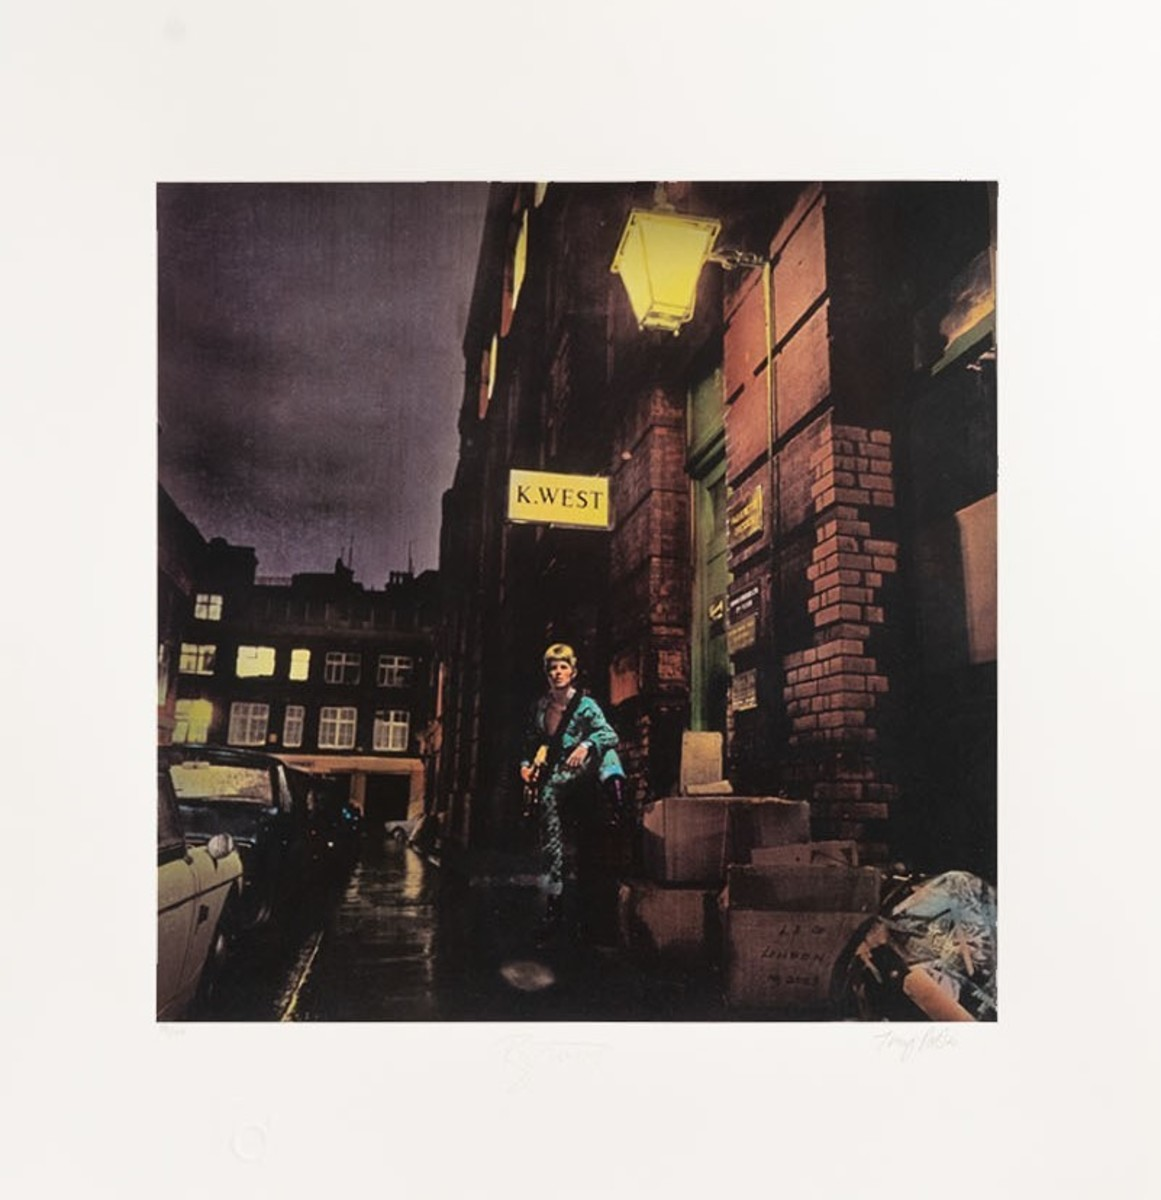 David Bowie - Ziggy Stardust Limited Edition Fine Art Print - Signed by David Bowie & Terry Pastor